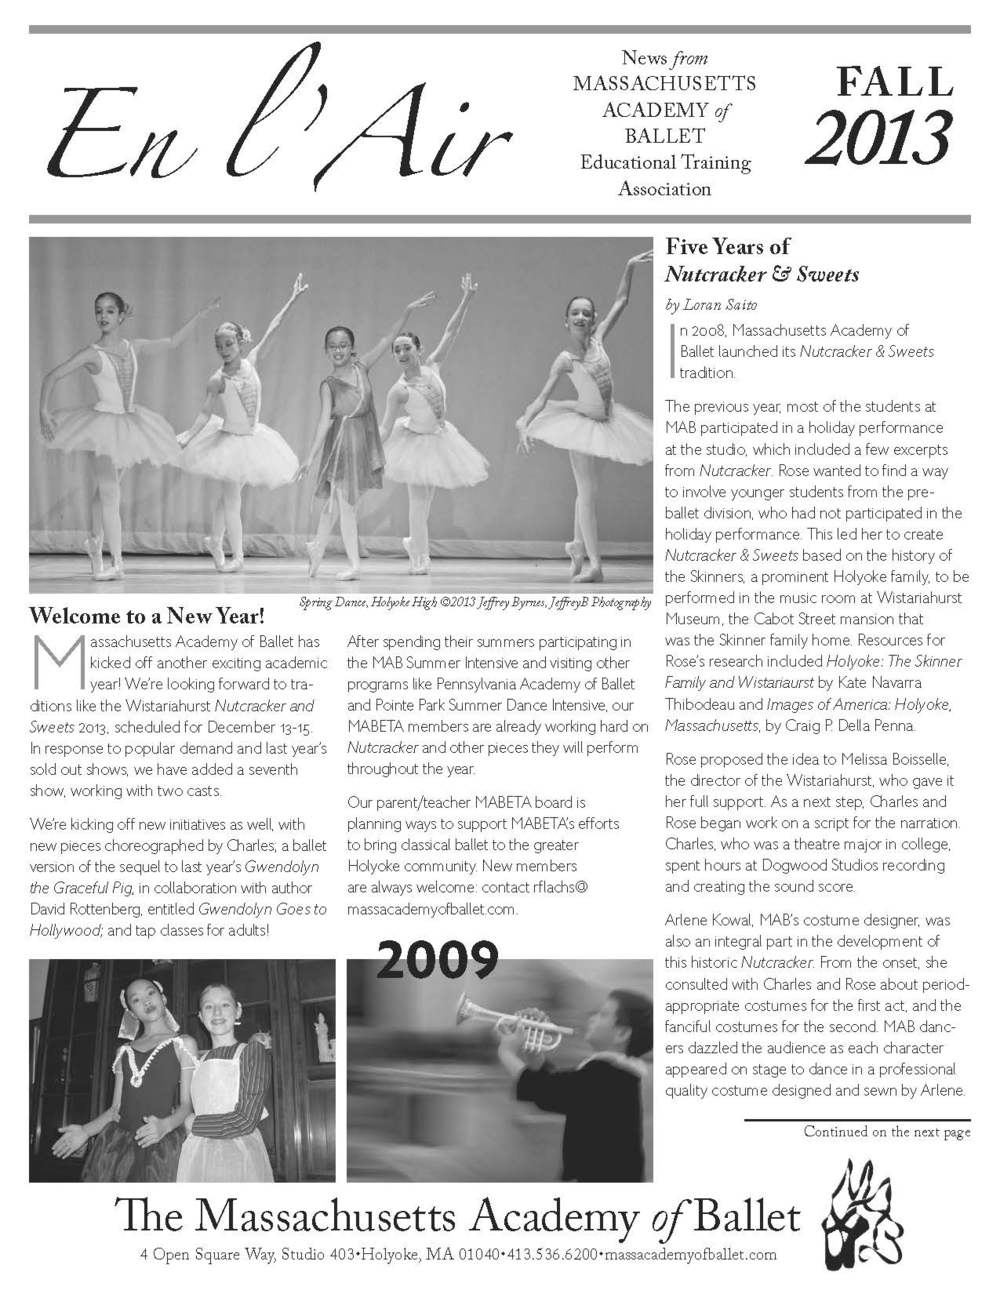 Massachusetts Academy of Ballet Fall 2013